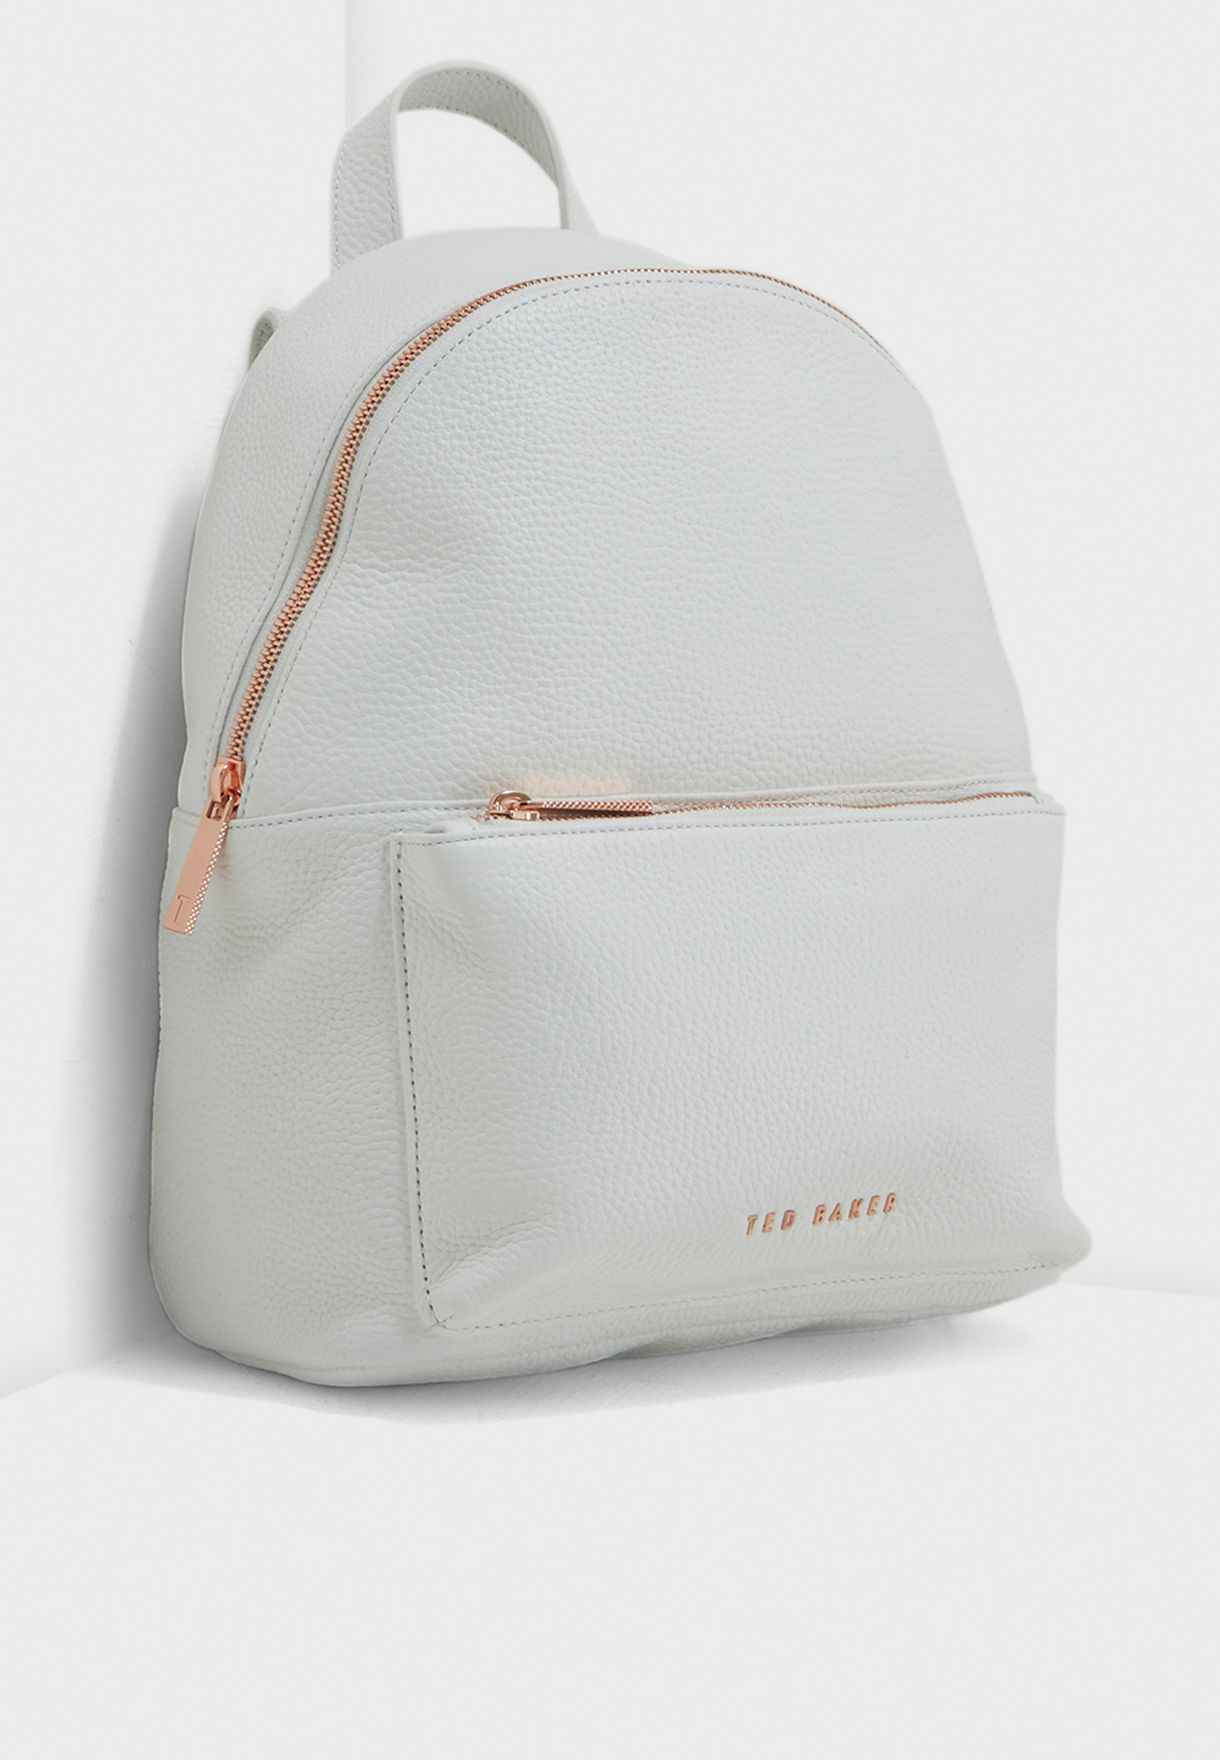 5c6a2483b Shop Ted baker white Pearen Soft Grain Backpack 143201 for Women in UAE -  TE456AC23ILK